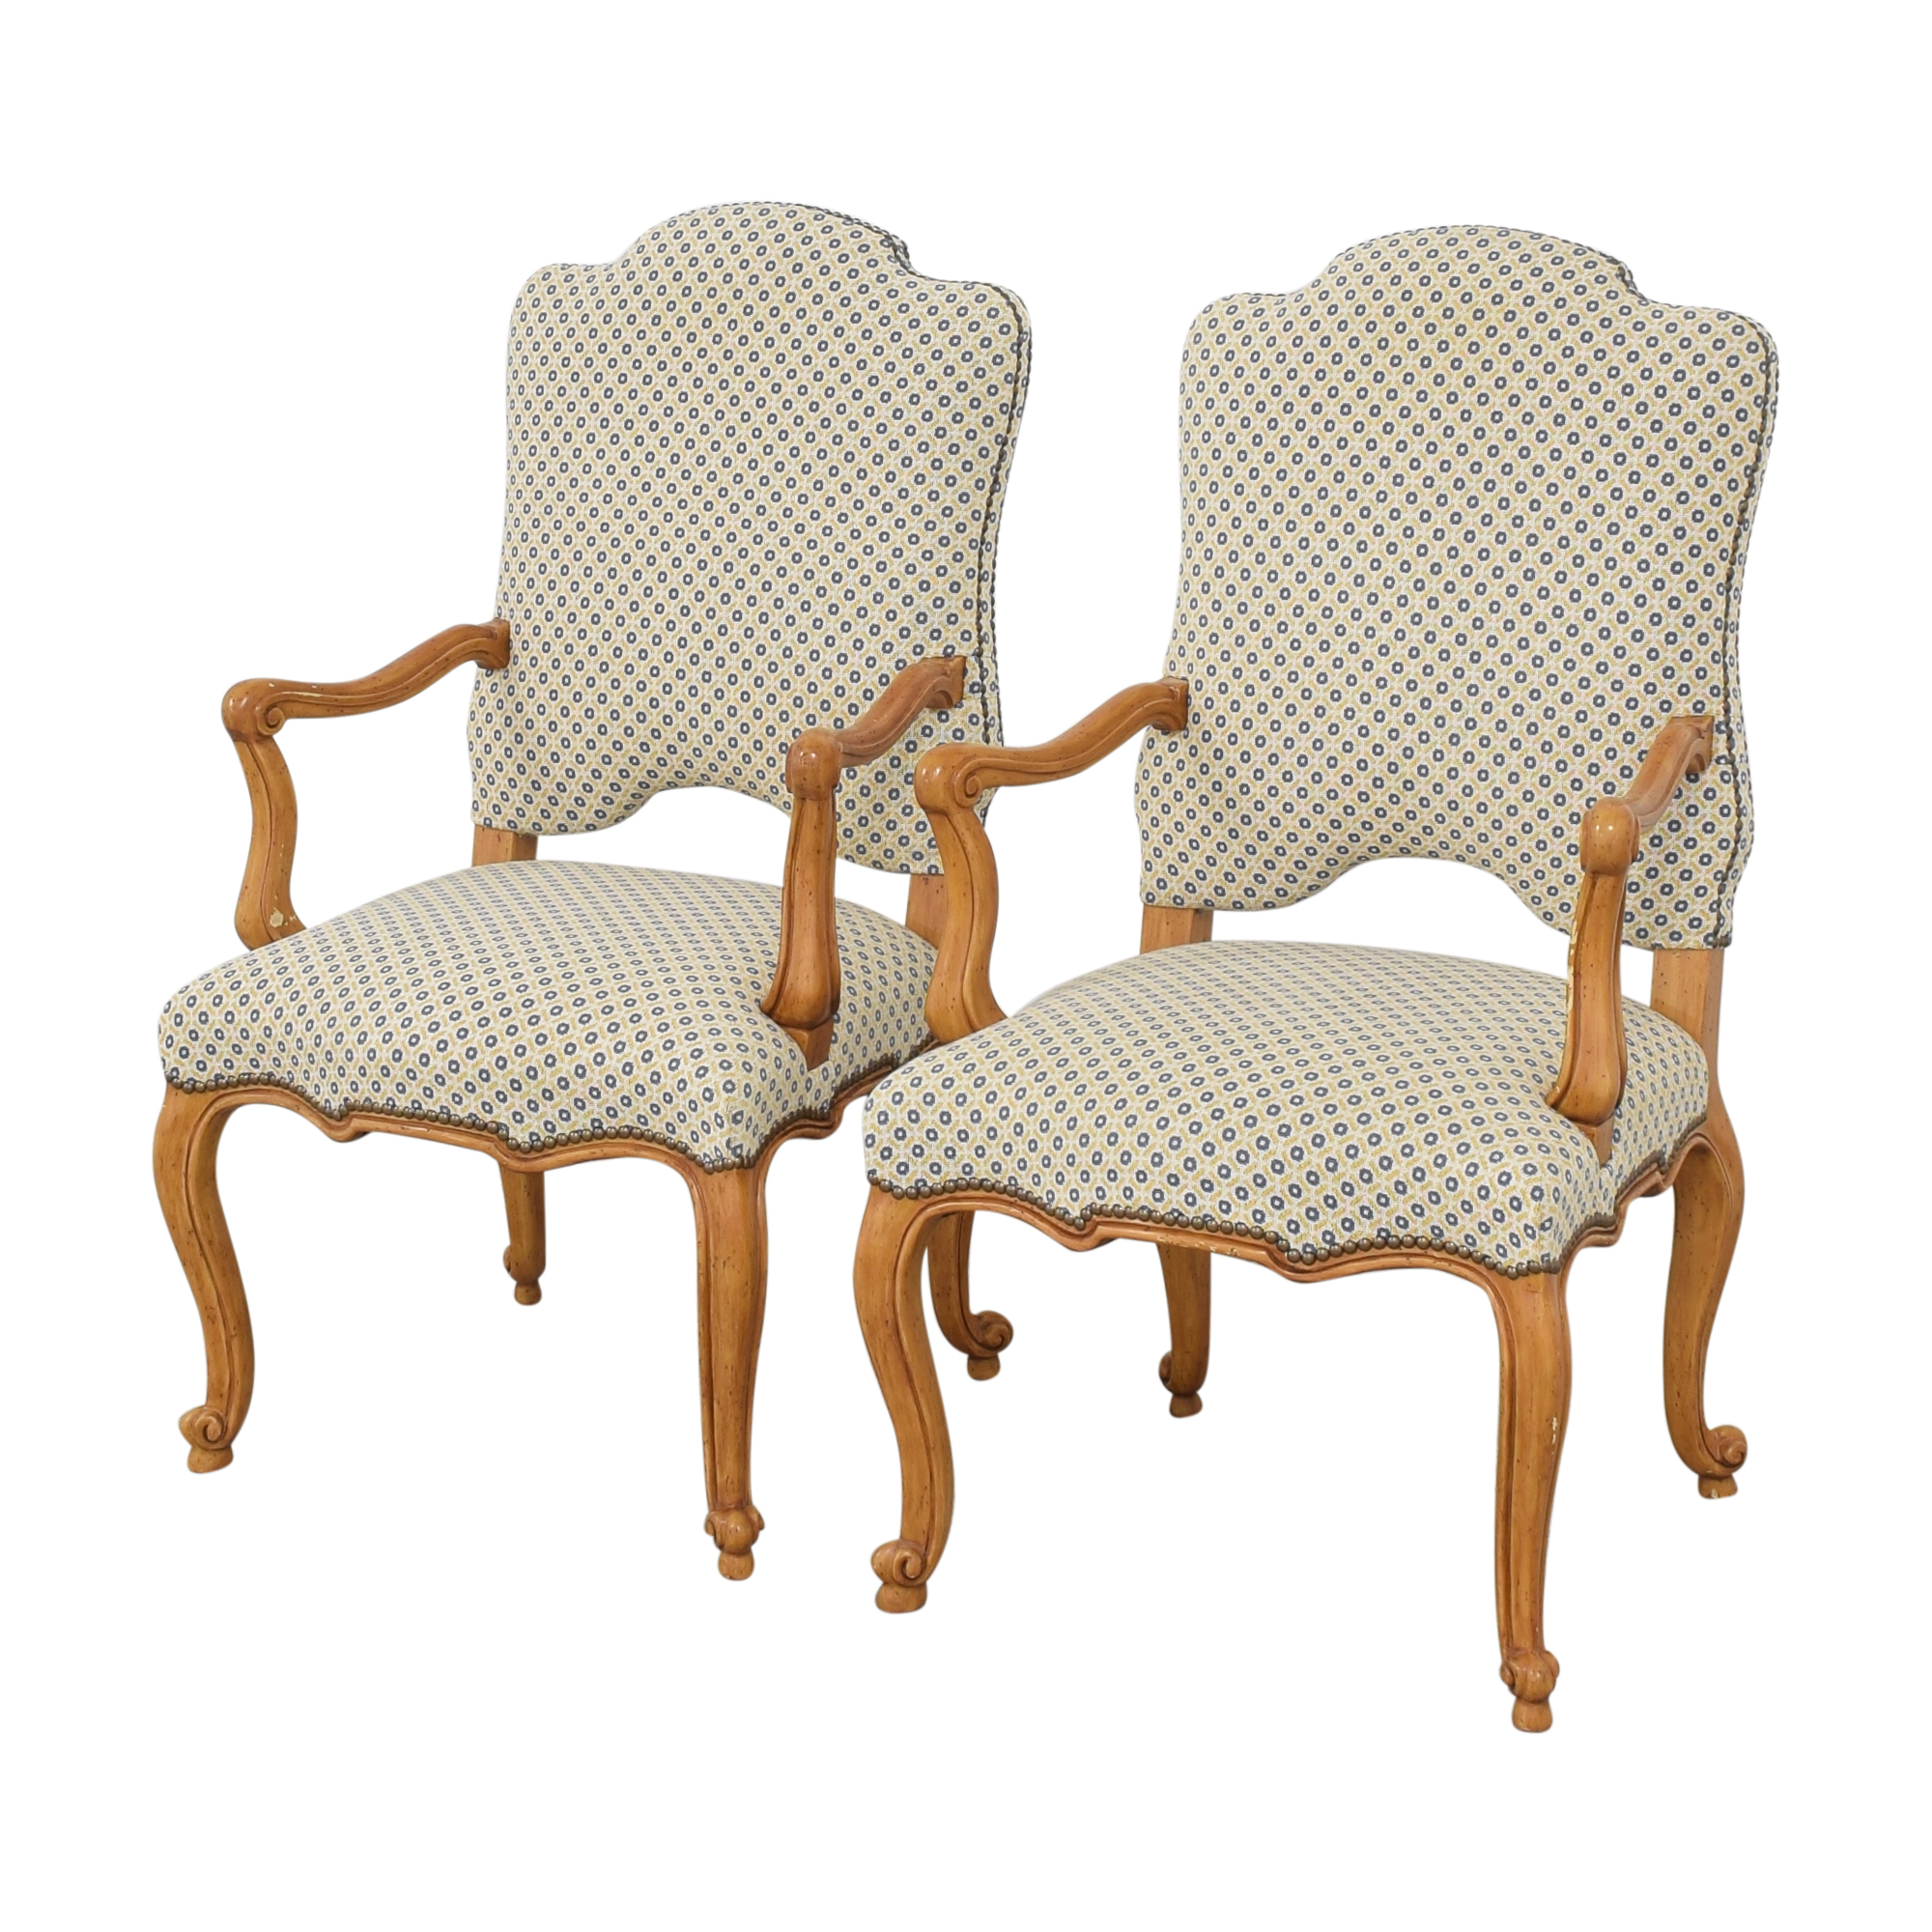 buy Minton-Spidell Regence Dining Chairs Minton-Spidell Dining Chairs